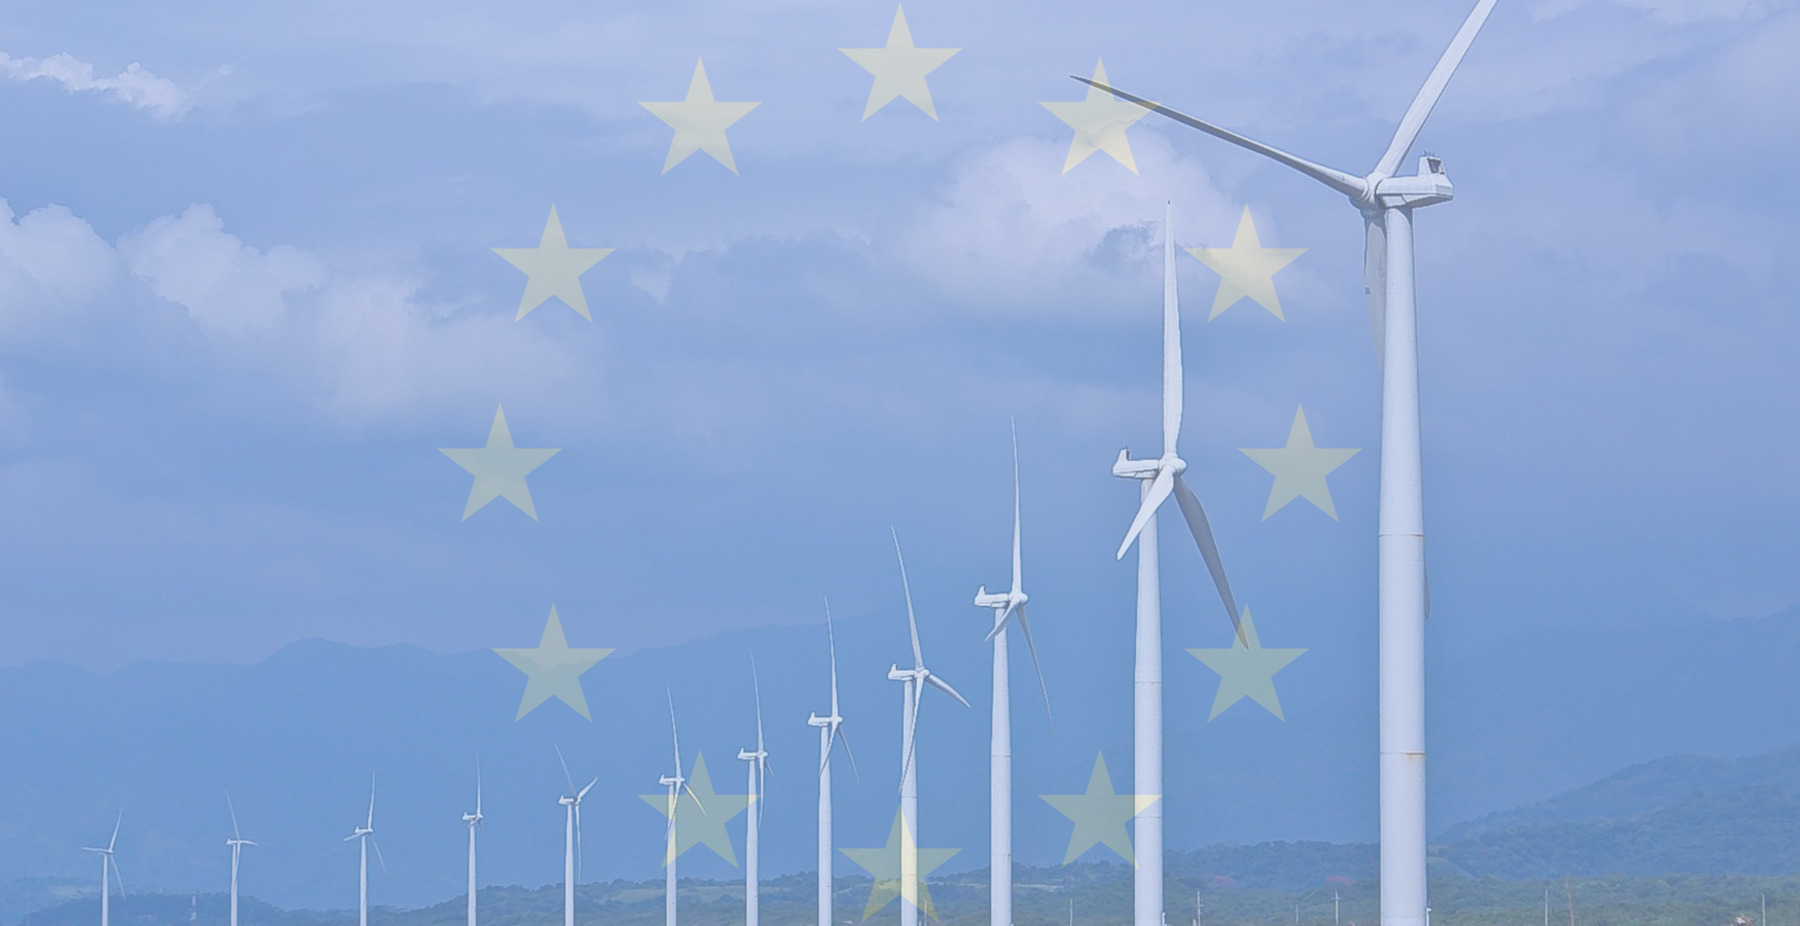 overlay of the EU flag on windmills along a coastline